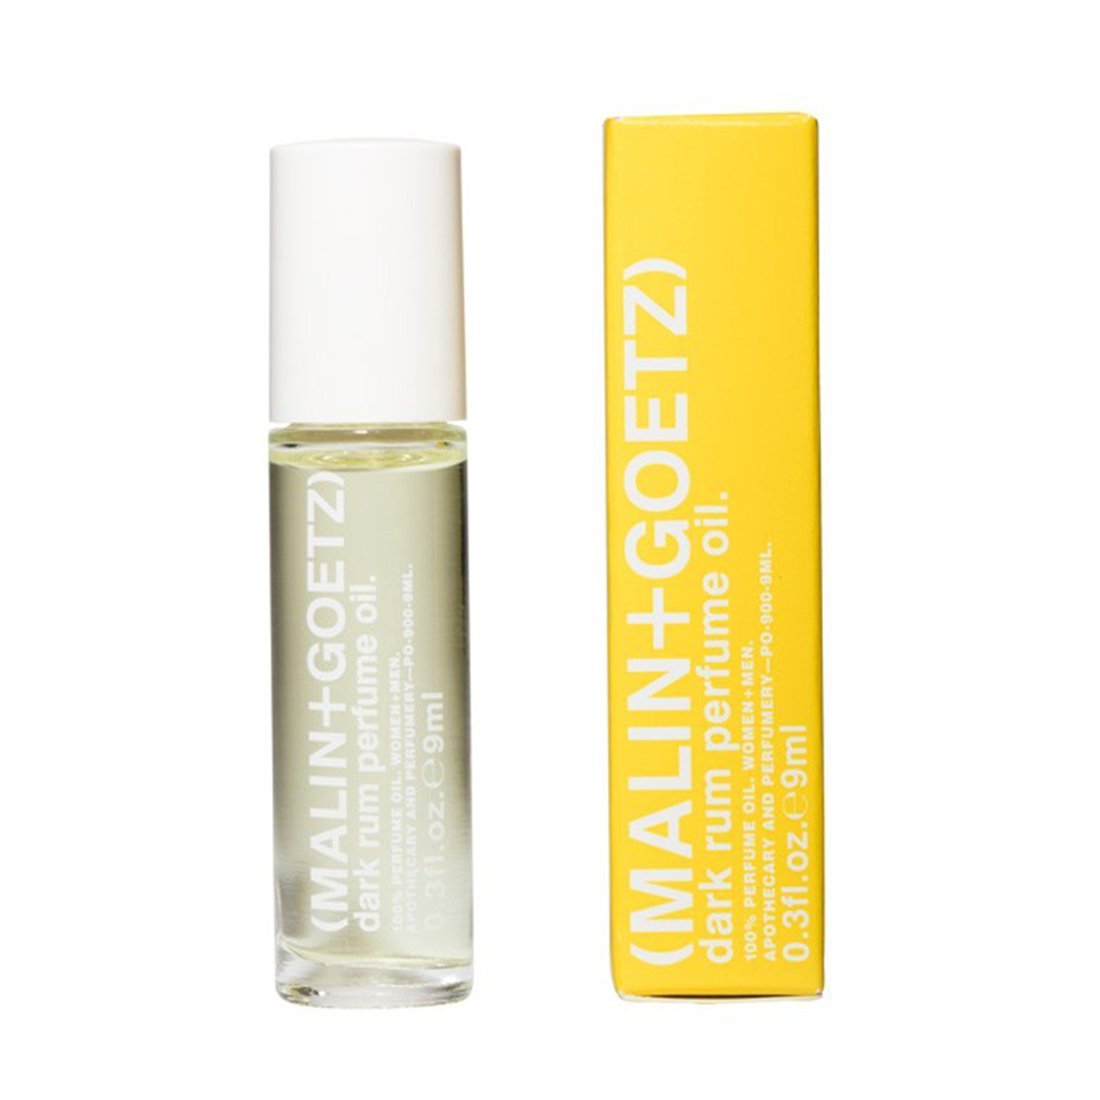 Malin + Goetz Perfume Oil - Various Scents